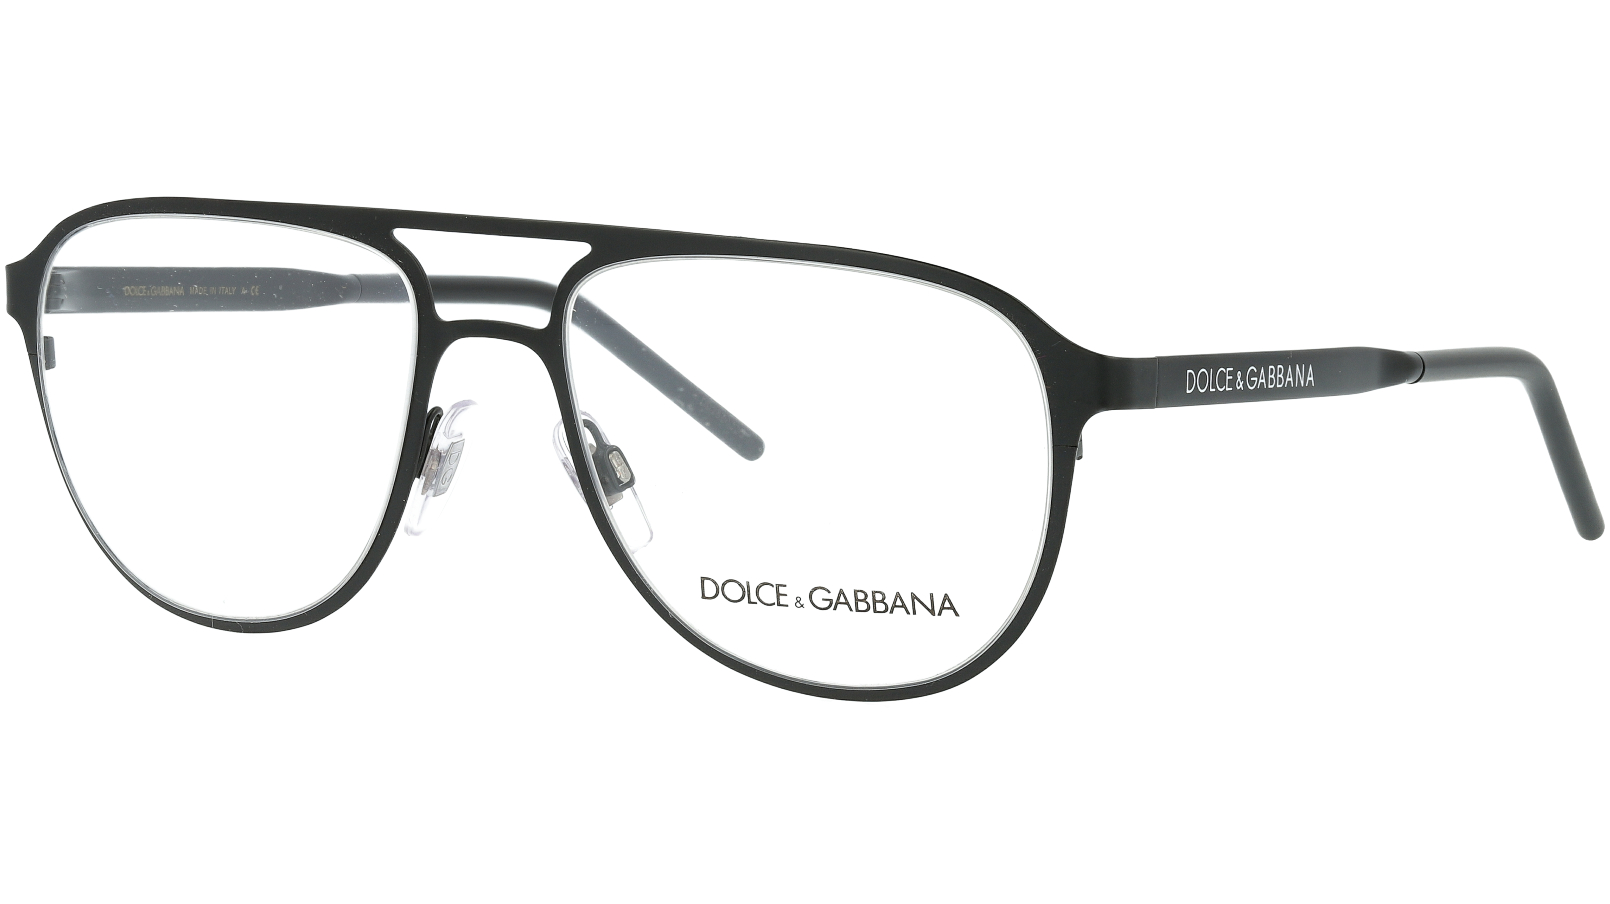 DOLCE & GABBANA DG1317 1106 54 BLACK Glasses